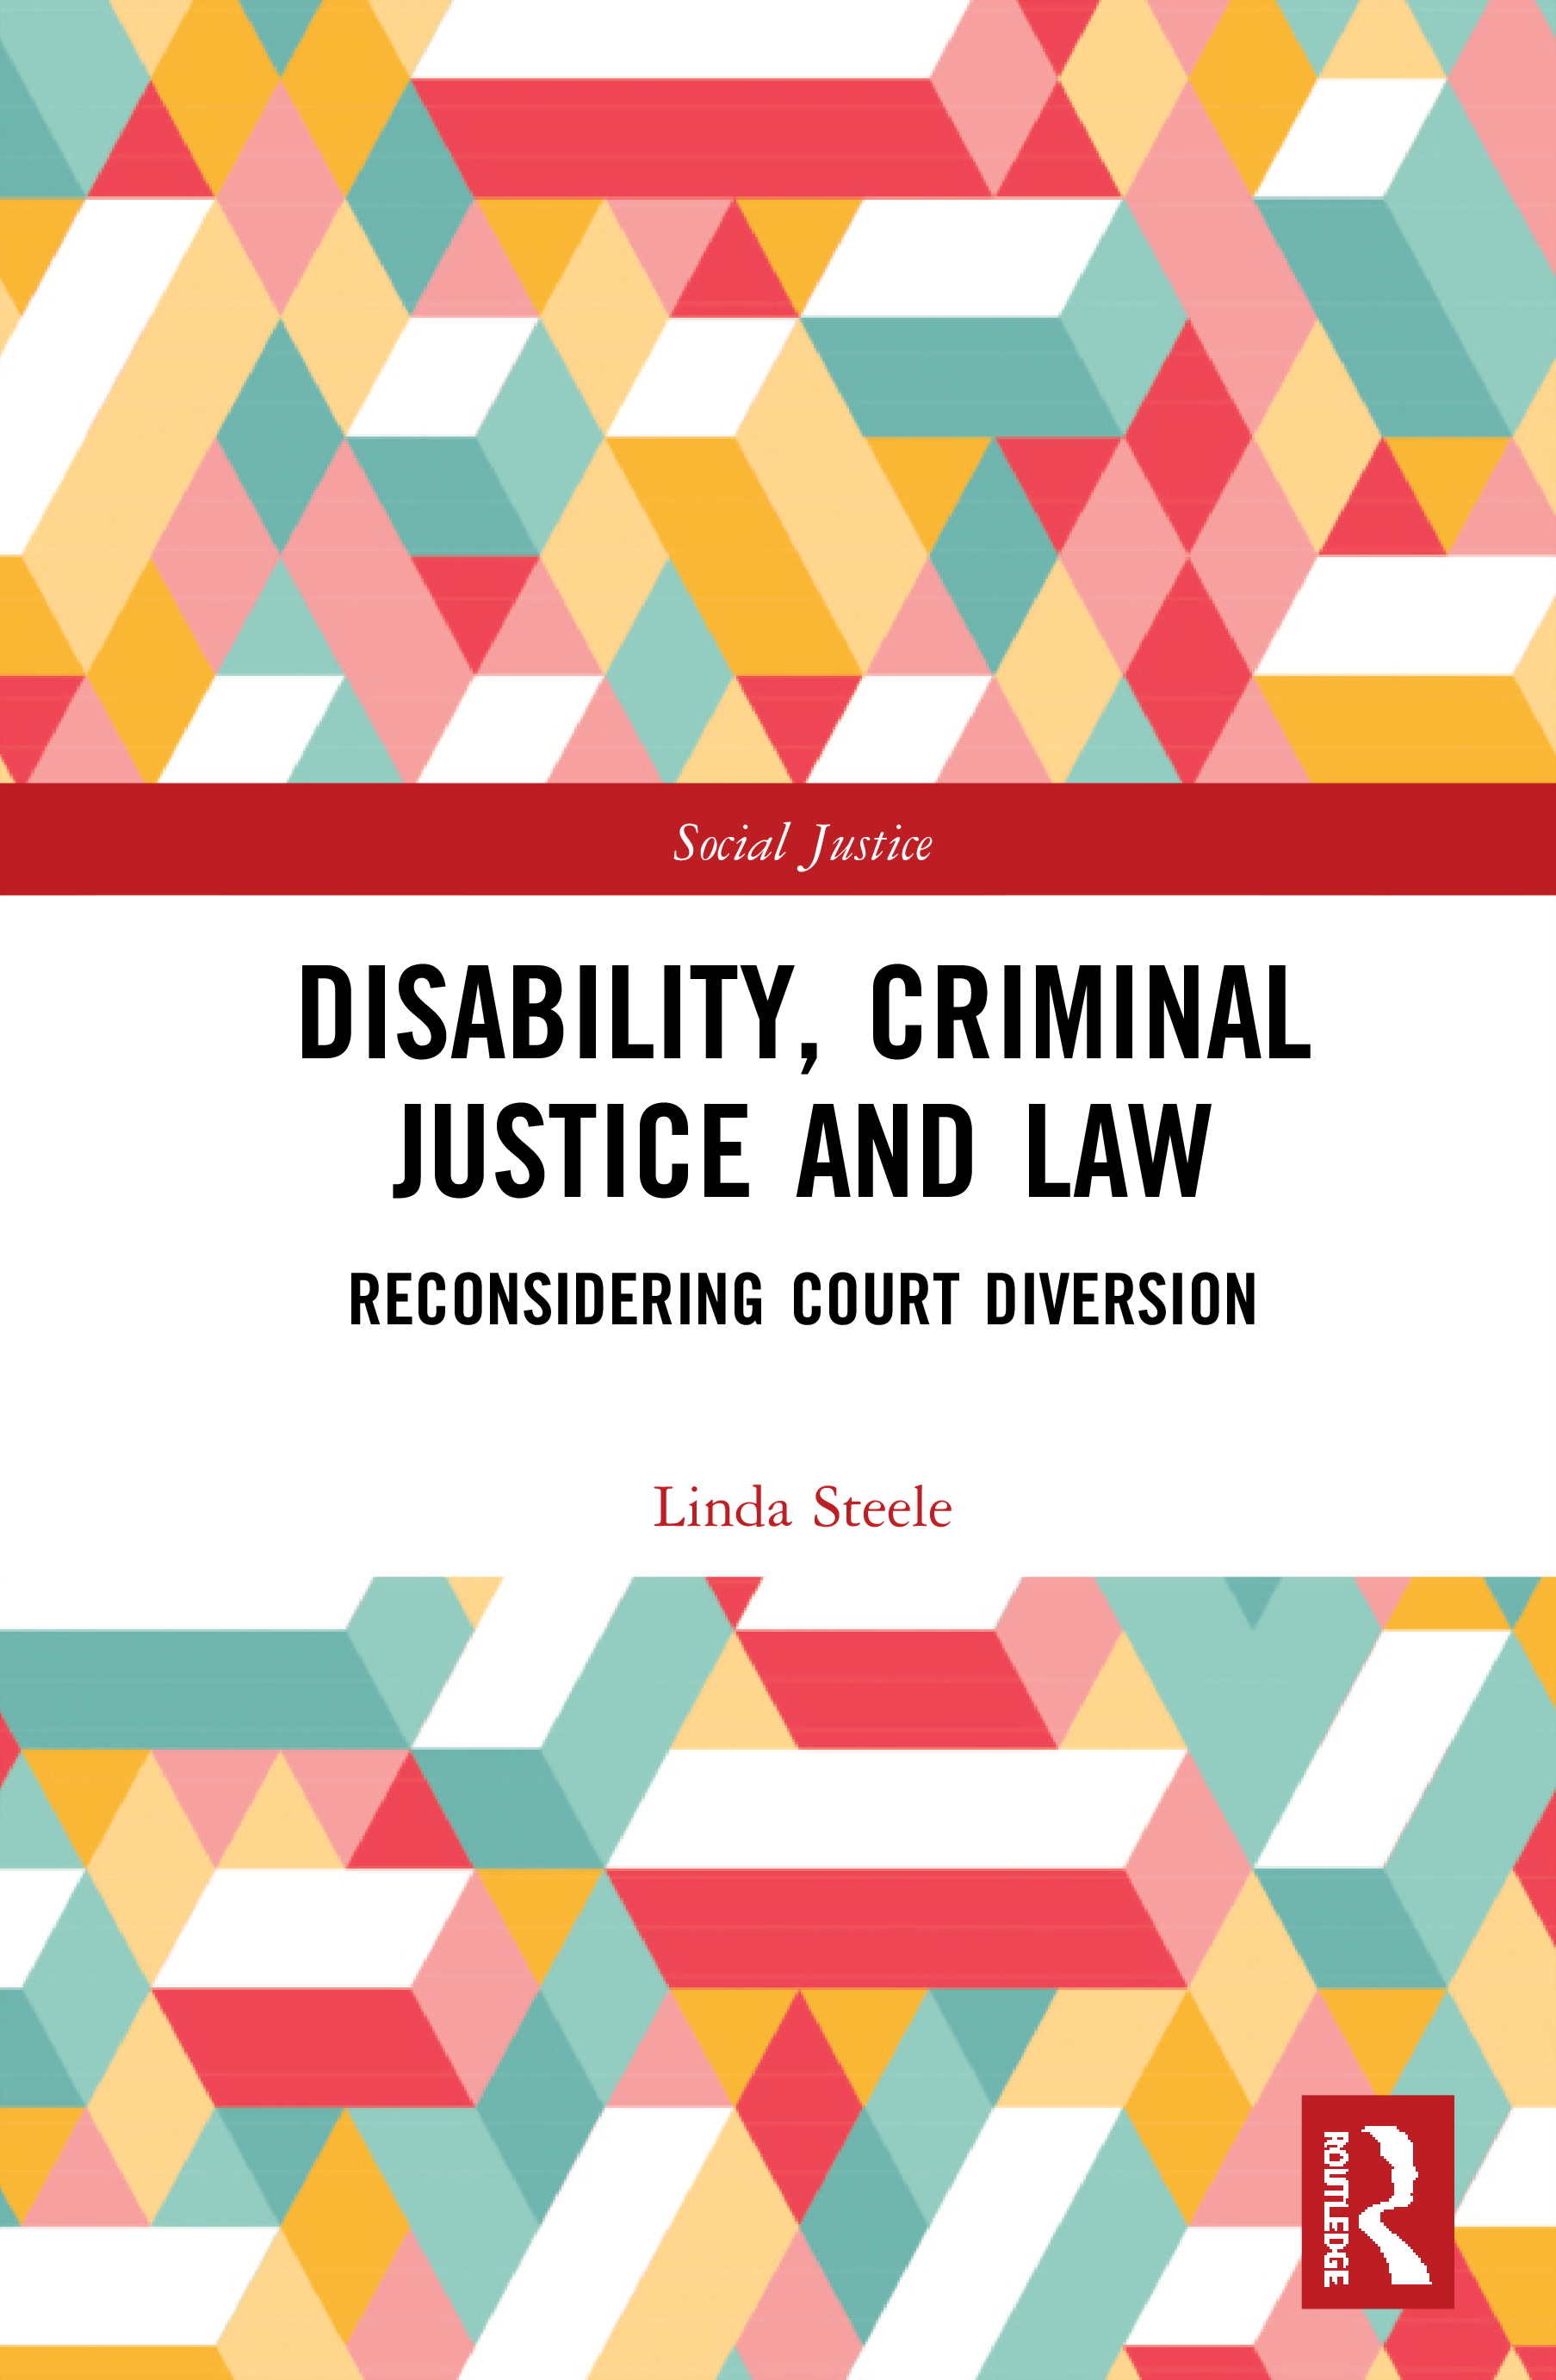 Disability, Criminal Justice and Law: Reconsidering Court Diversion book cover